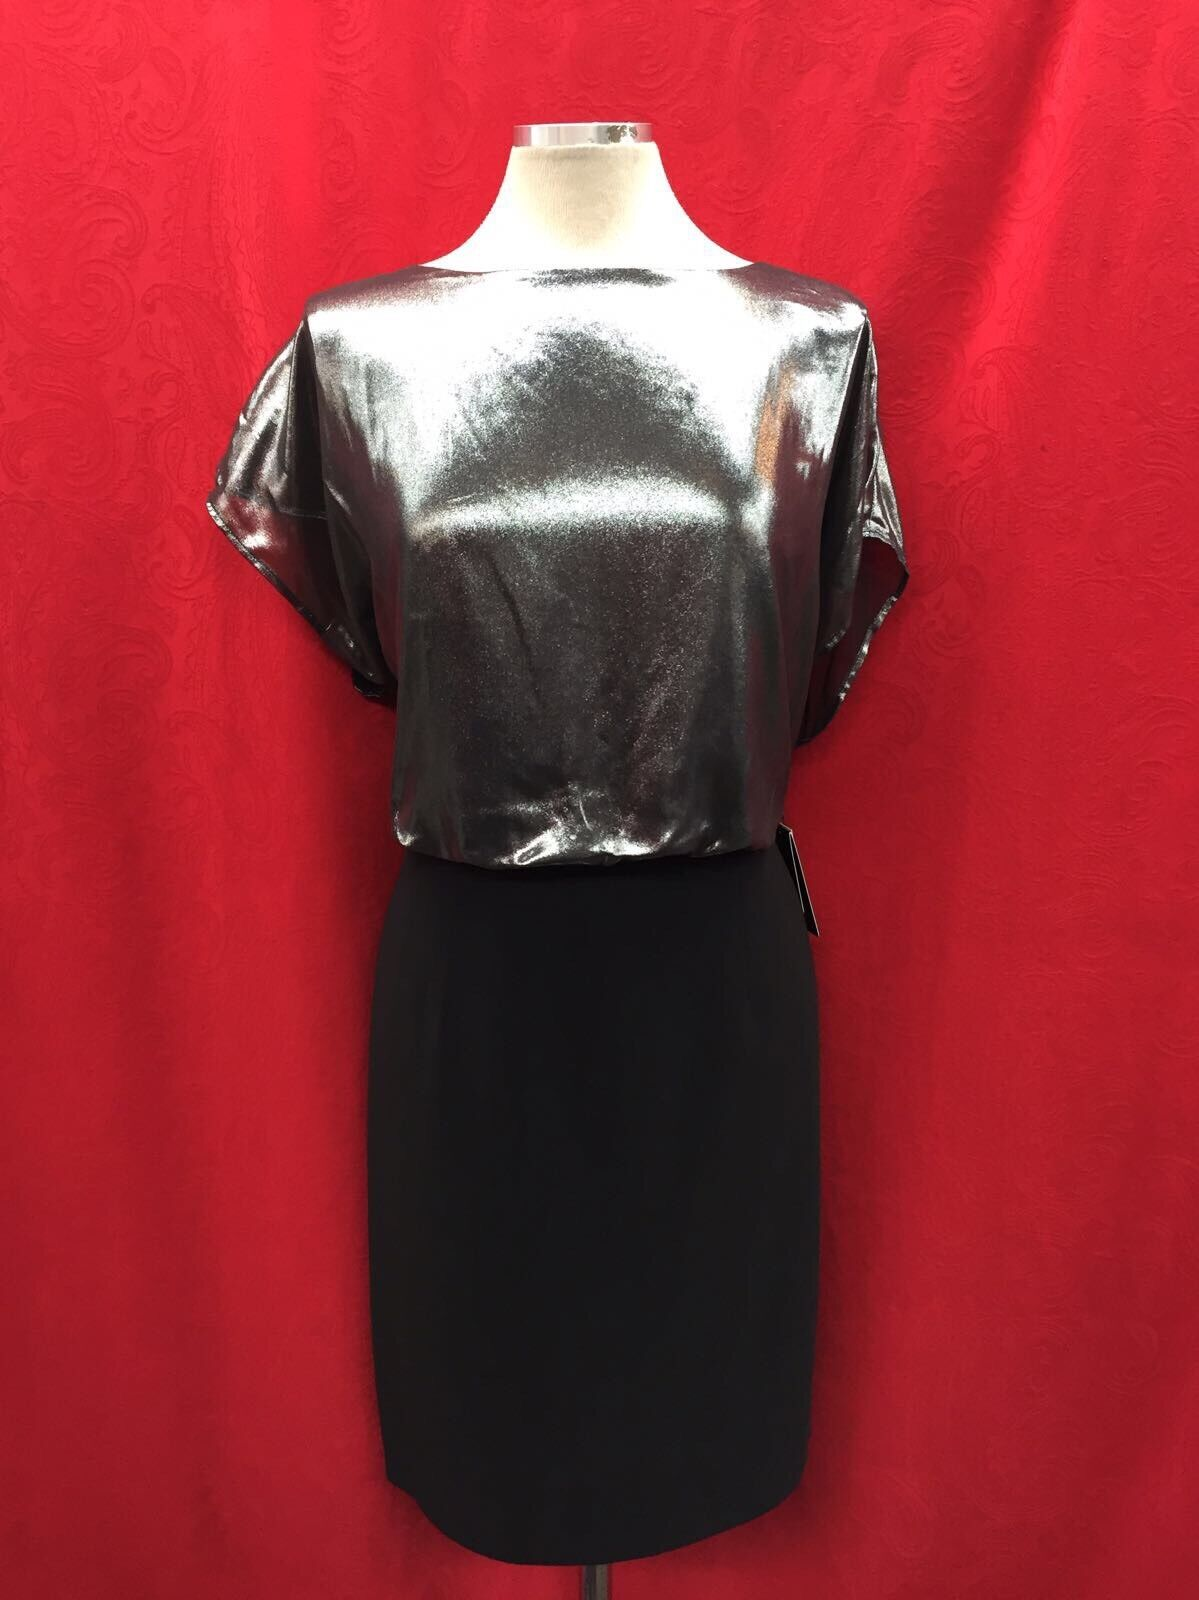 ADRIANNA PAPELL DRESS NEW WITH TAG RETAIL LENGTH 41' SIZE 24W LINED STRETCH